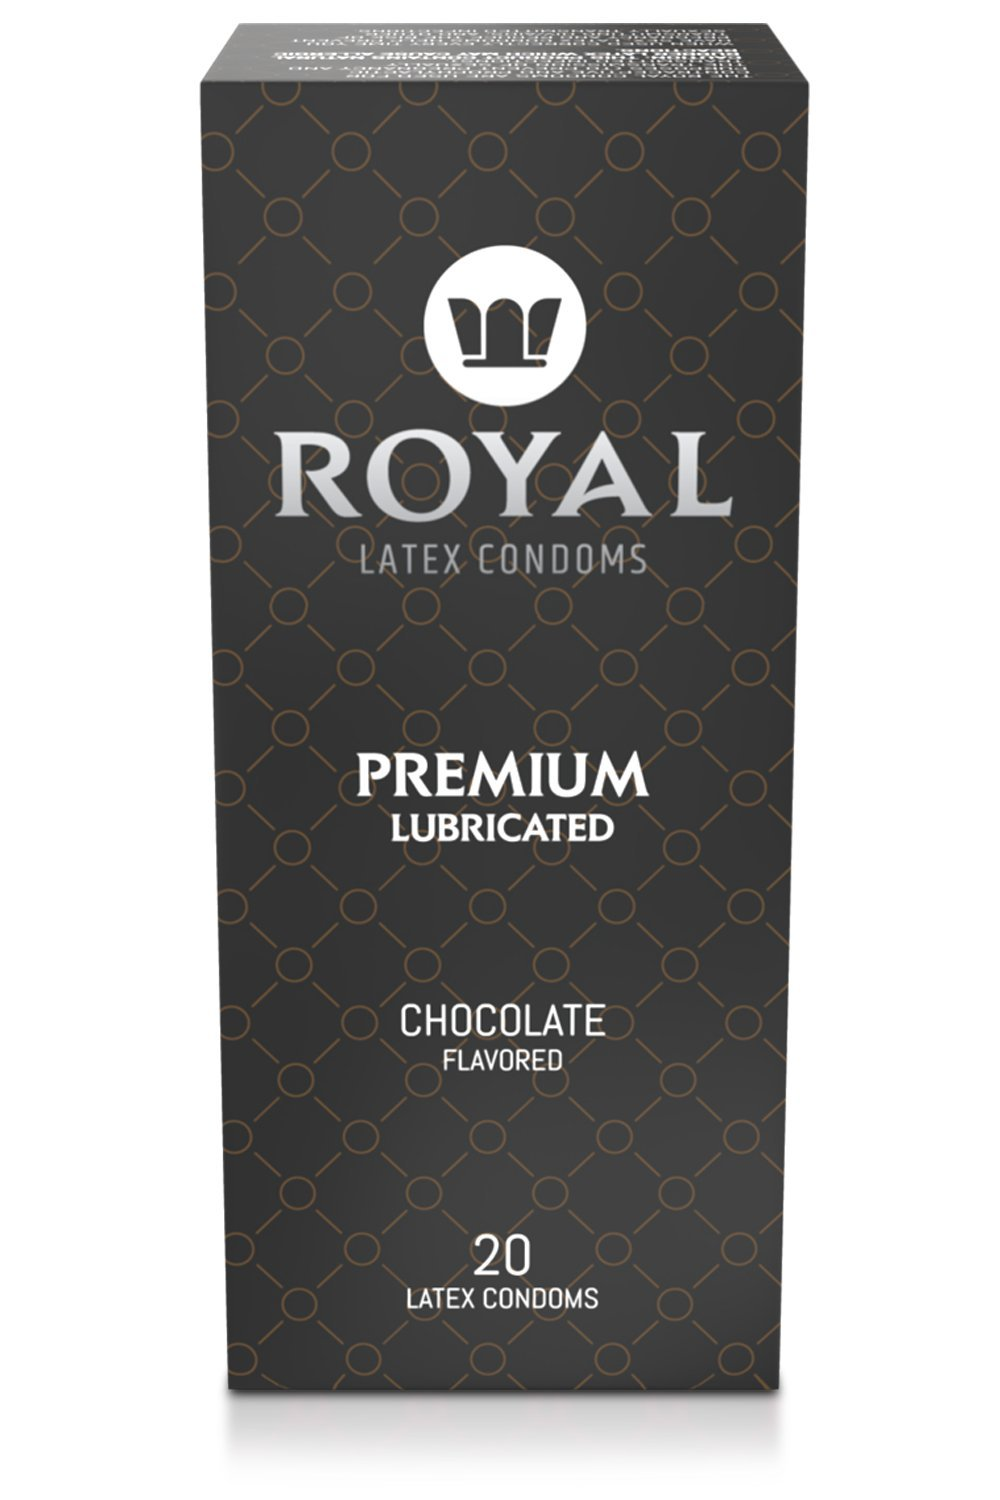 Chocolate Flavored Condoms - Royal